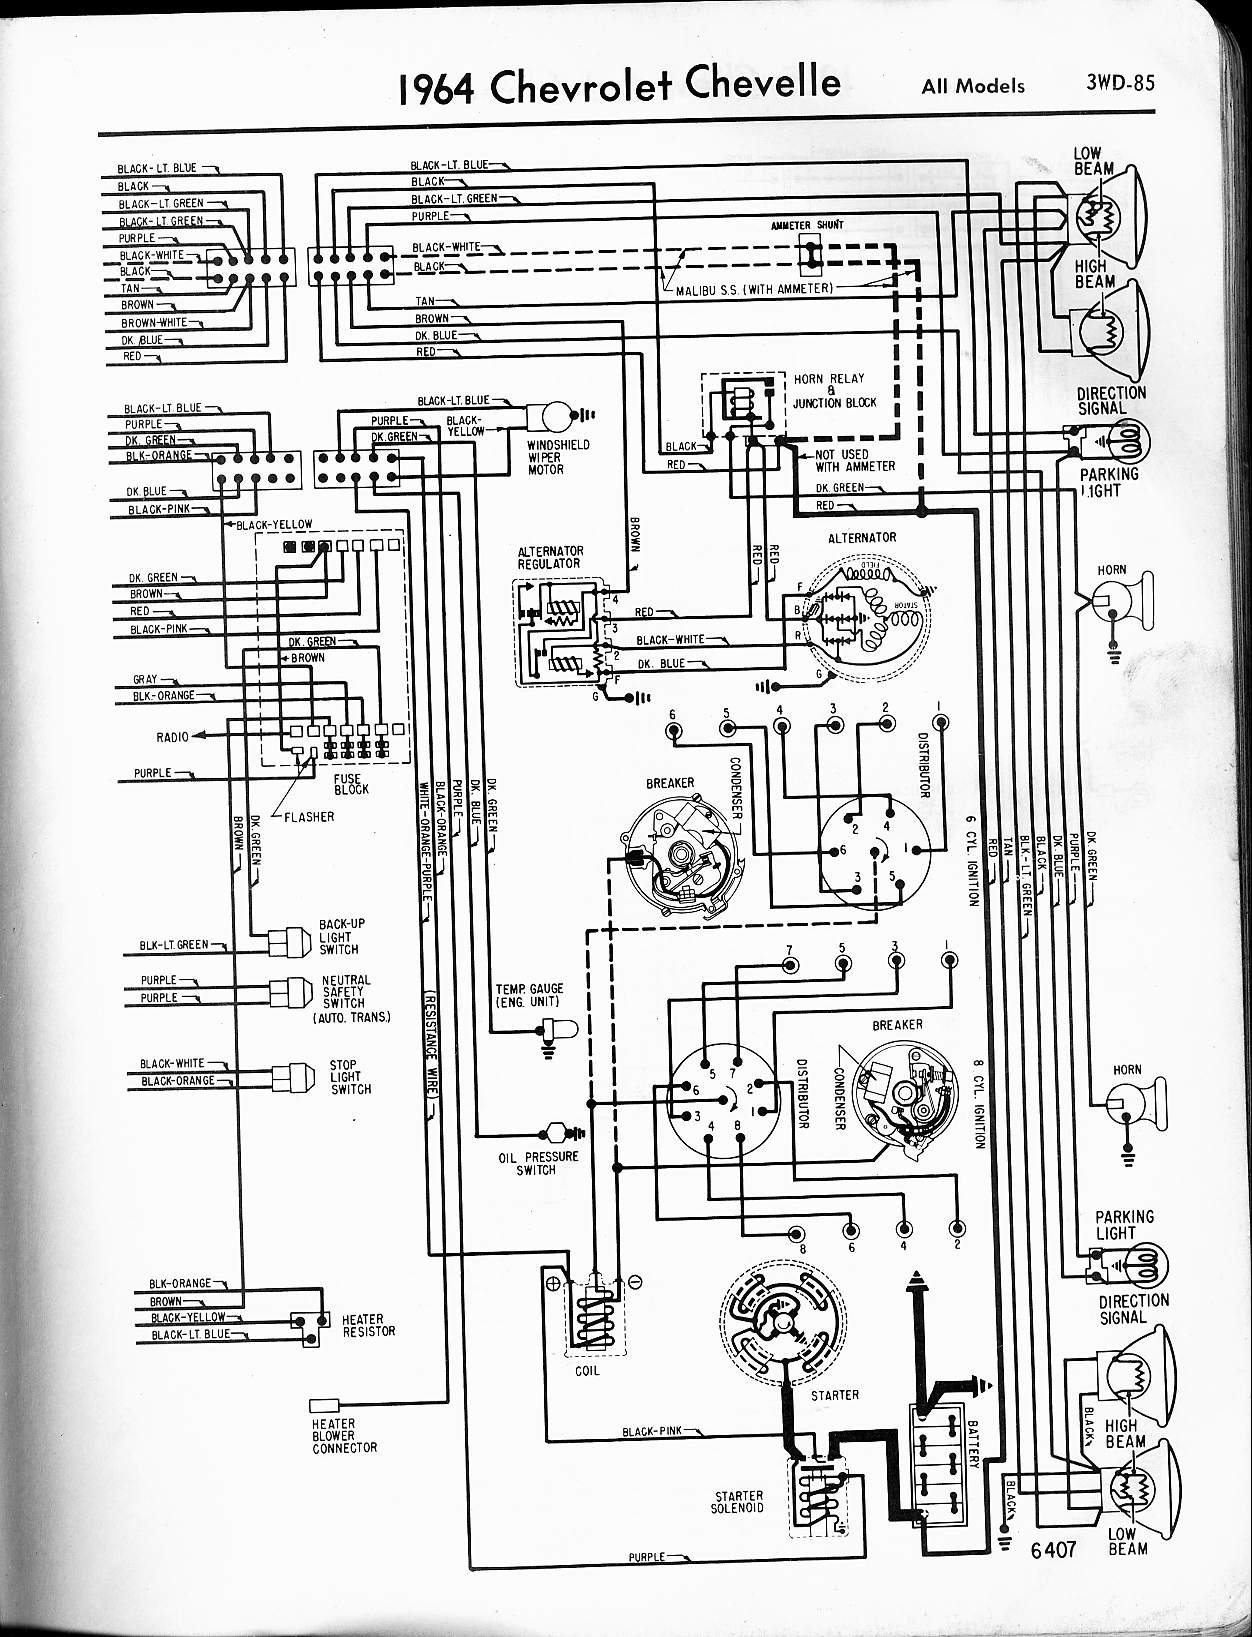 MWireChev64_3WD 085 chevy diagrams Chevy Wiring Harness Diagram at edmiracle.co